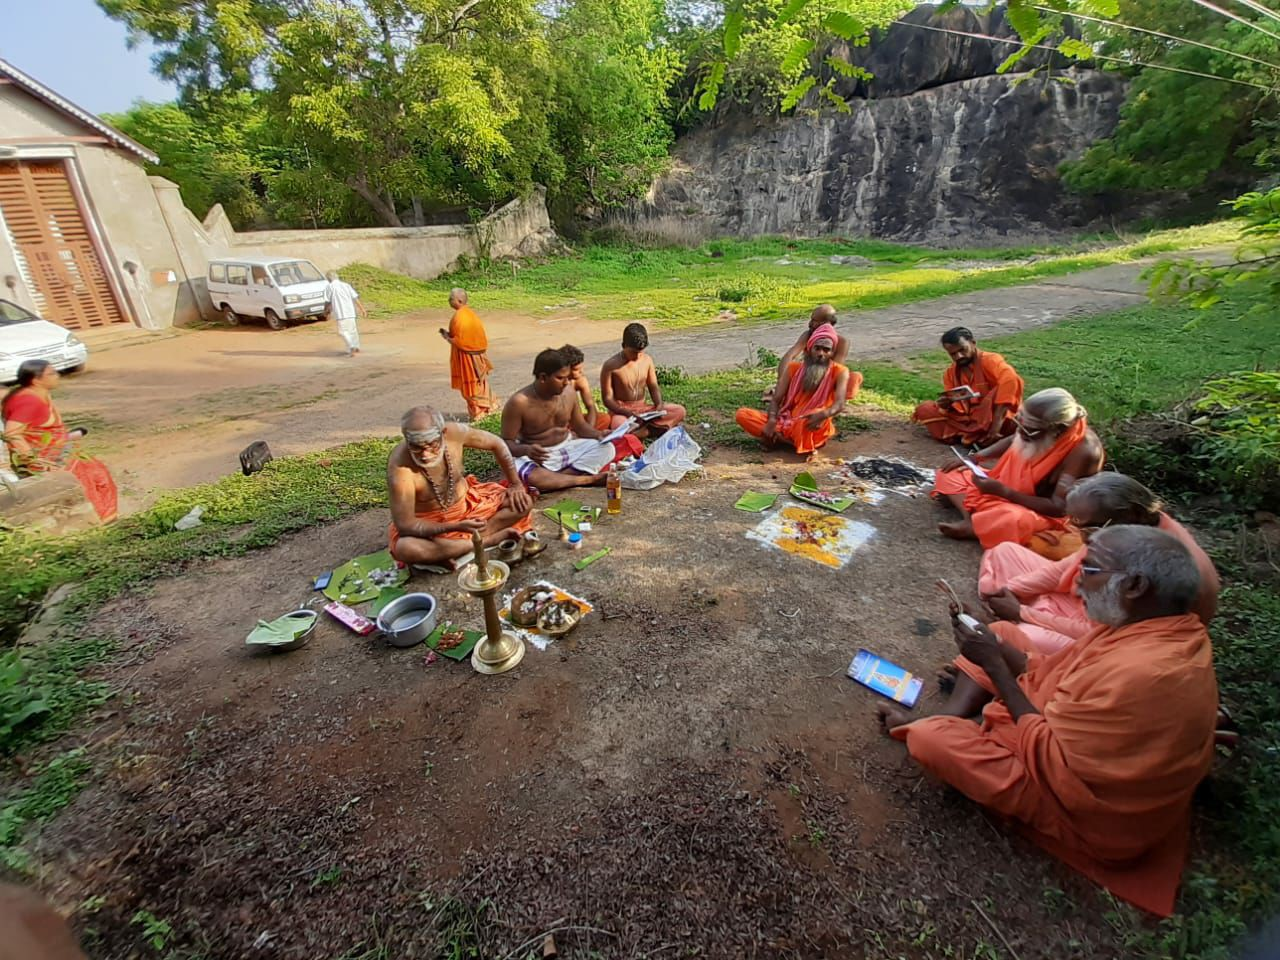 Pushpanjali Swamiyar: A Shankaracharya trying to reclaim his Mutt from encroachment